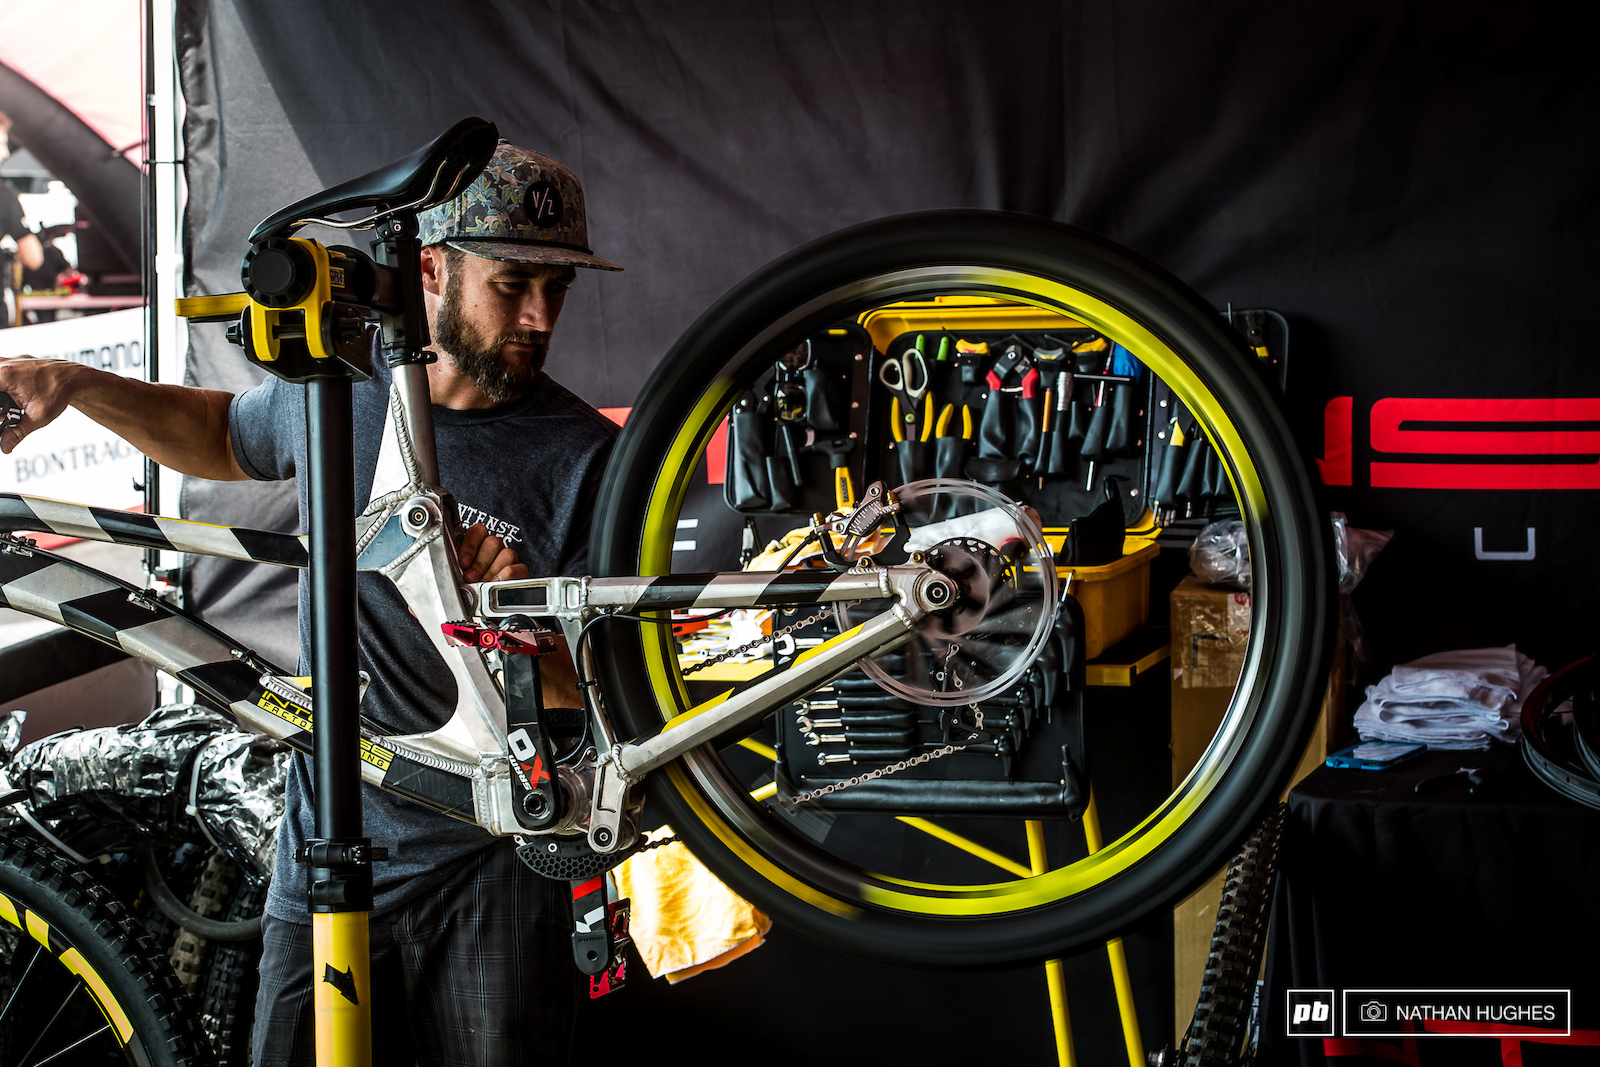 Chappy Fiene tuning in Deanos Machineos gears at the IFR pit.